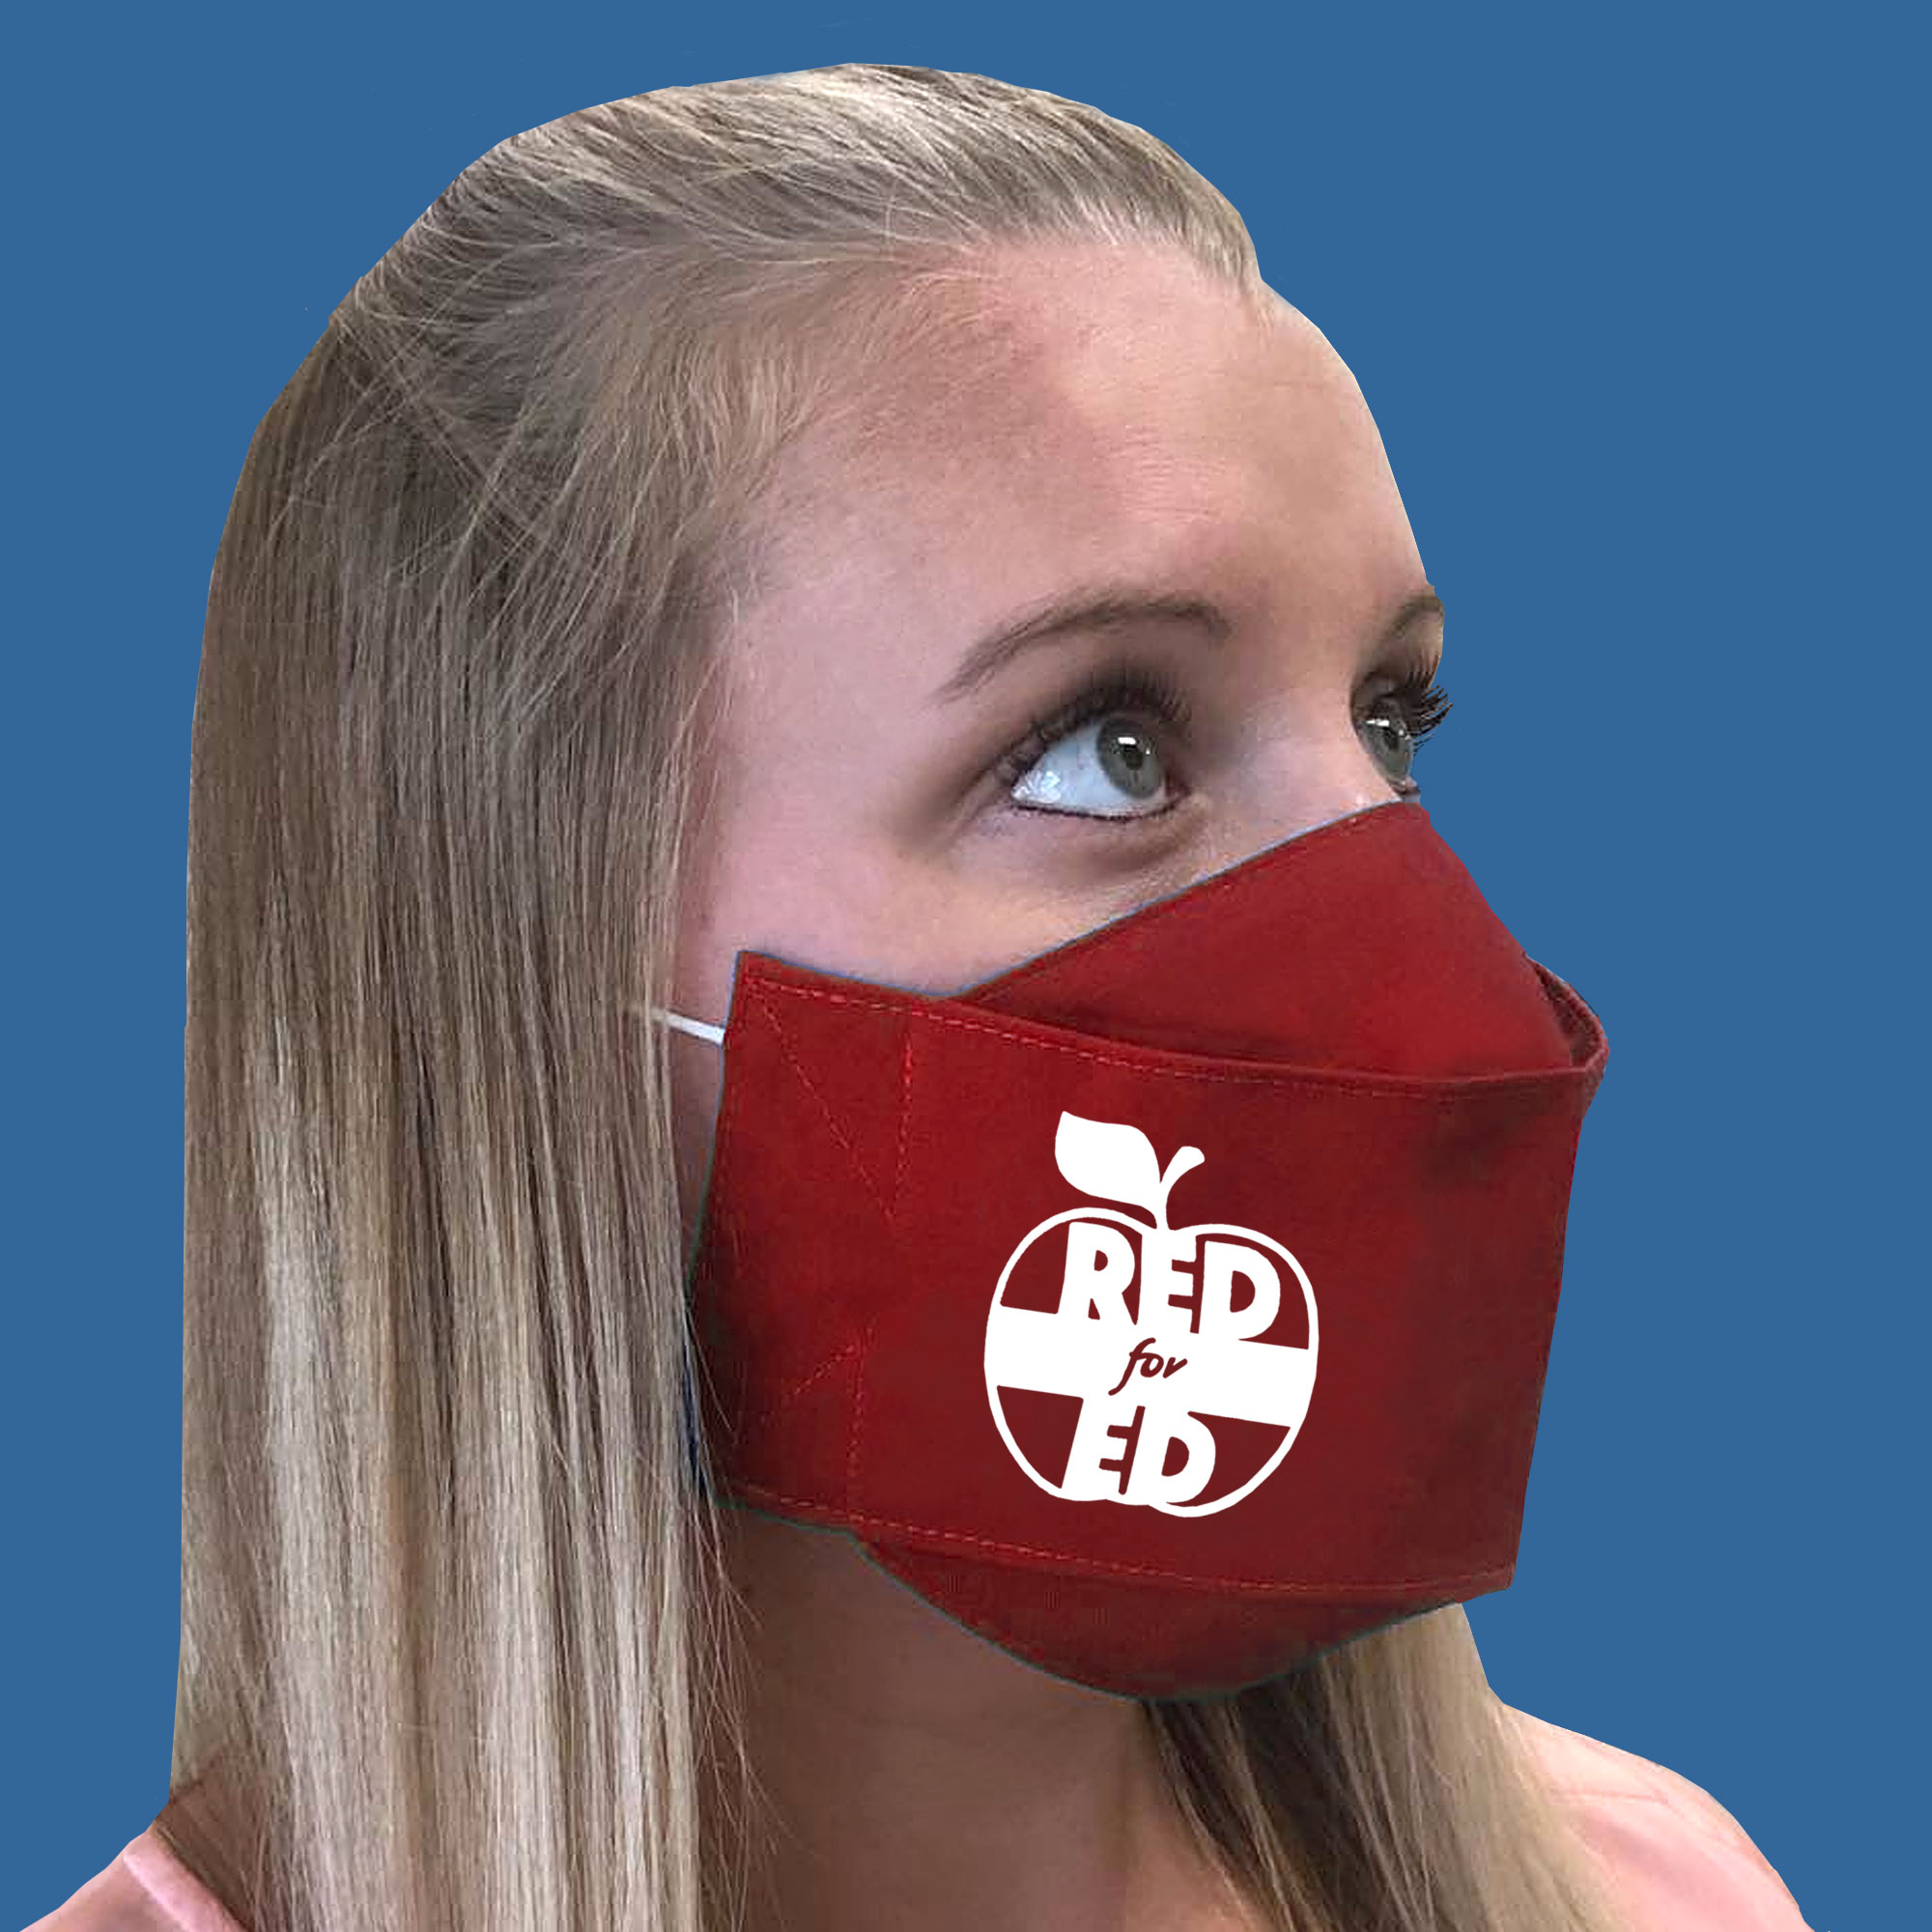 redfored-face-mask6